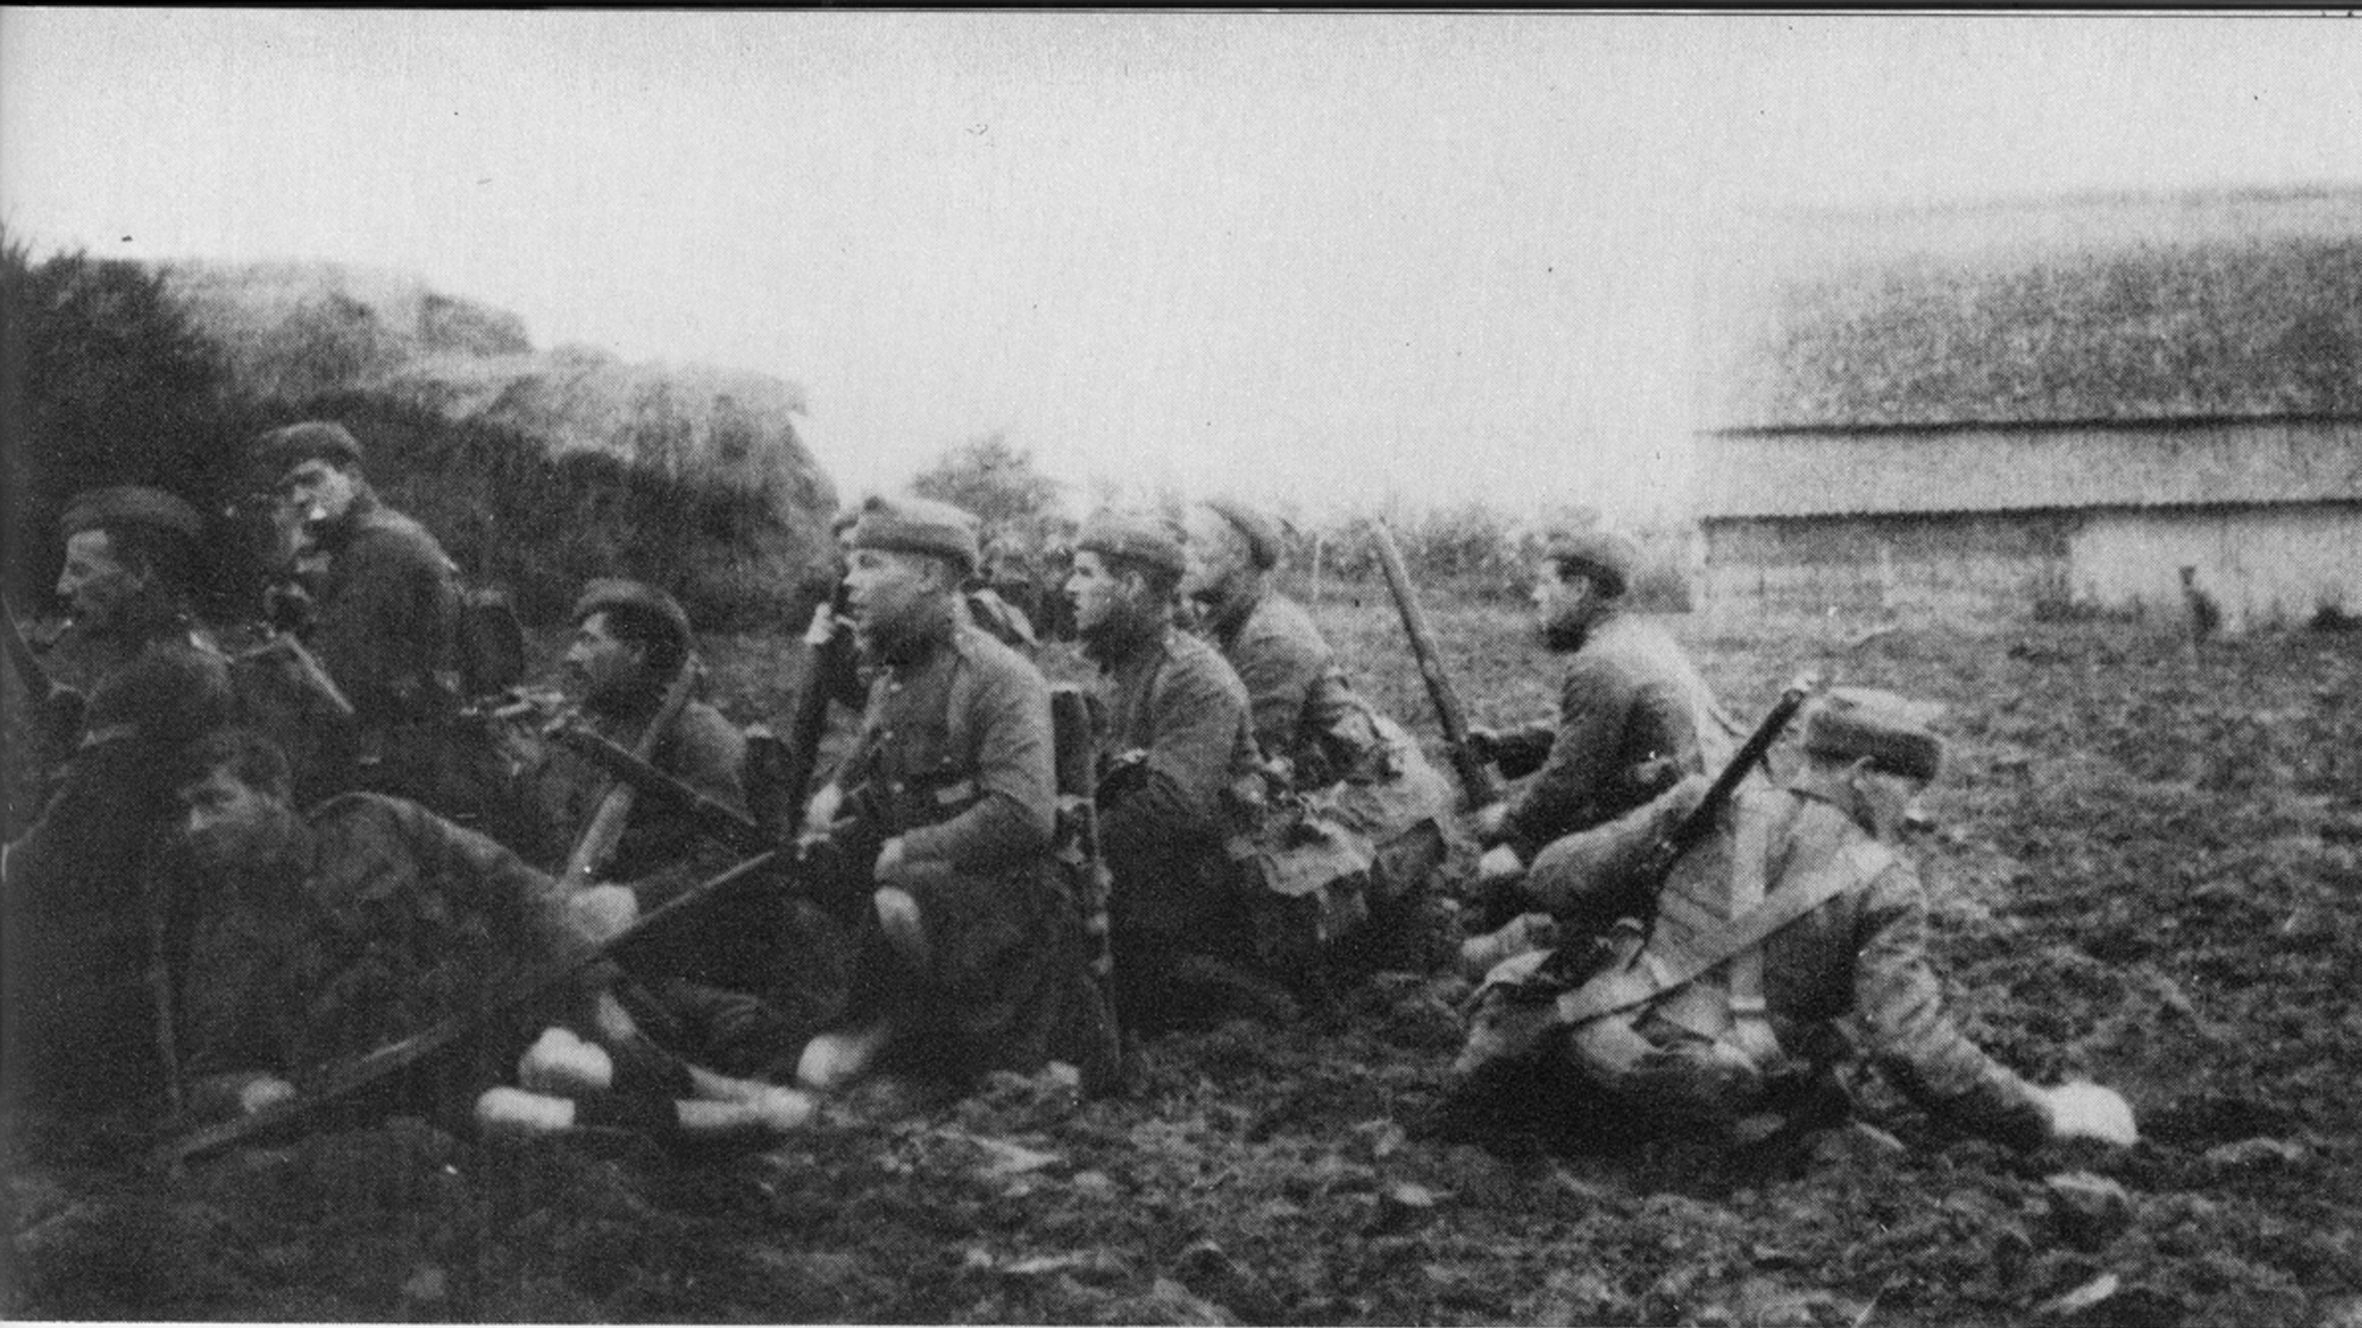 Some of the soldiers from 2nd Battalion Gordons pictured in Ypres in 1914.